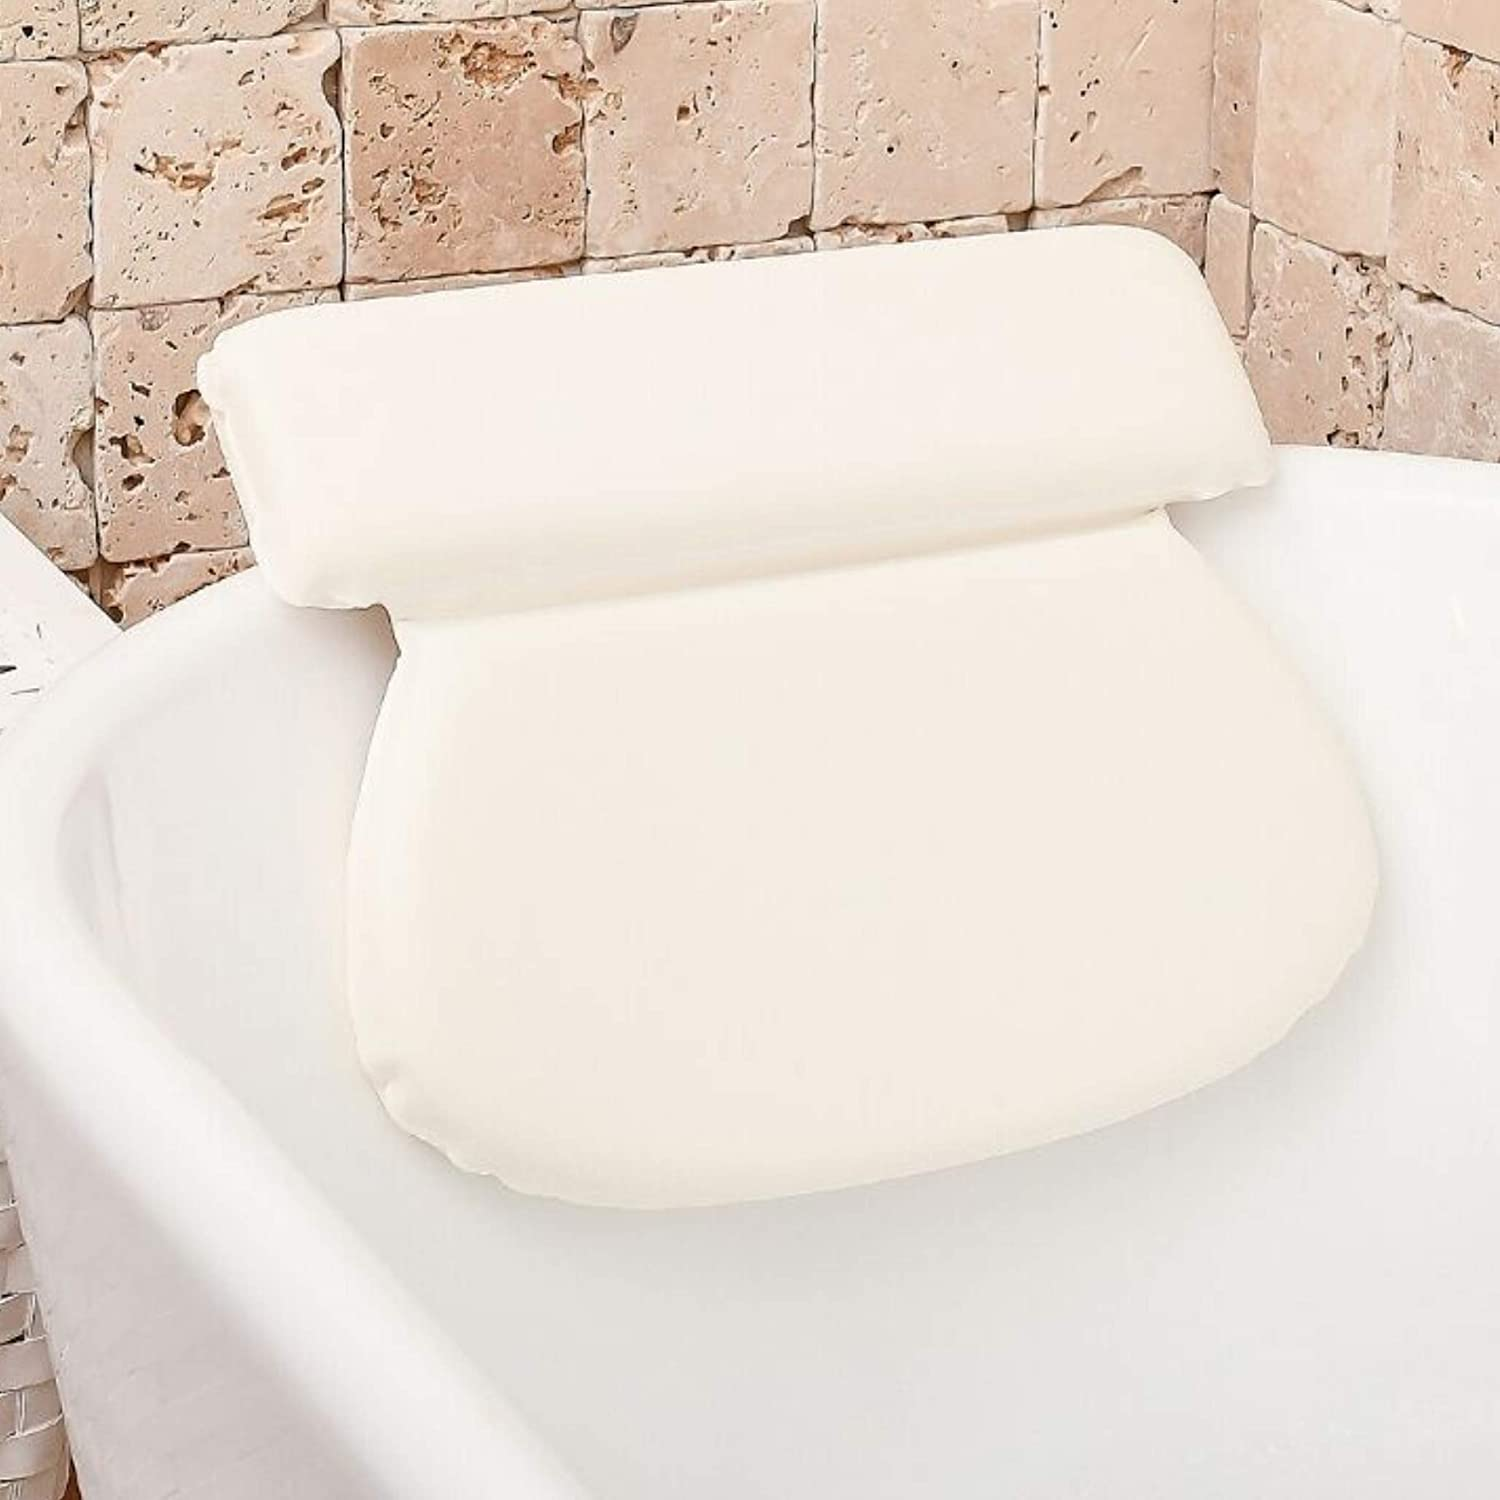 Bath Pillows For Tub Neck And Back Support: Bathtub Pillow For Neck And Shoulder - Bubble Bath Accessories Bath Tub Pillow For At-Home Spa. Self Care Gifts for Women, Relaxation Gifts For Mom